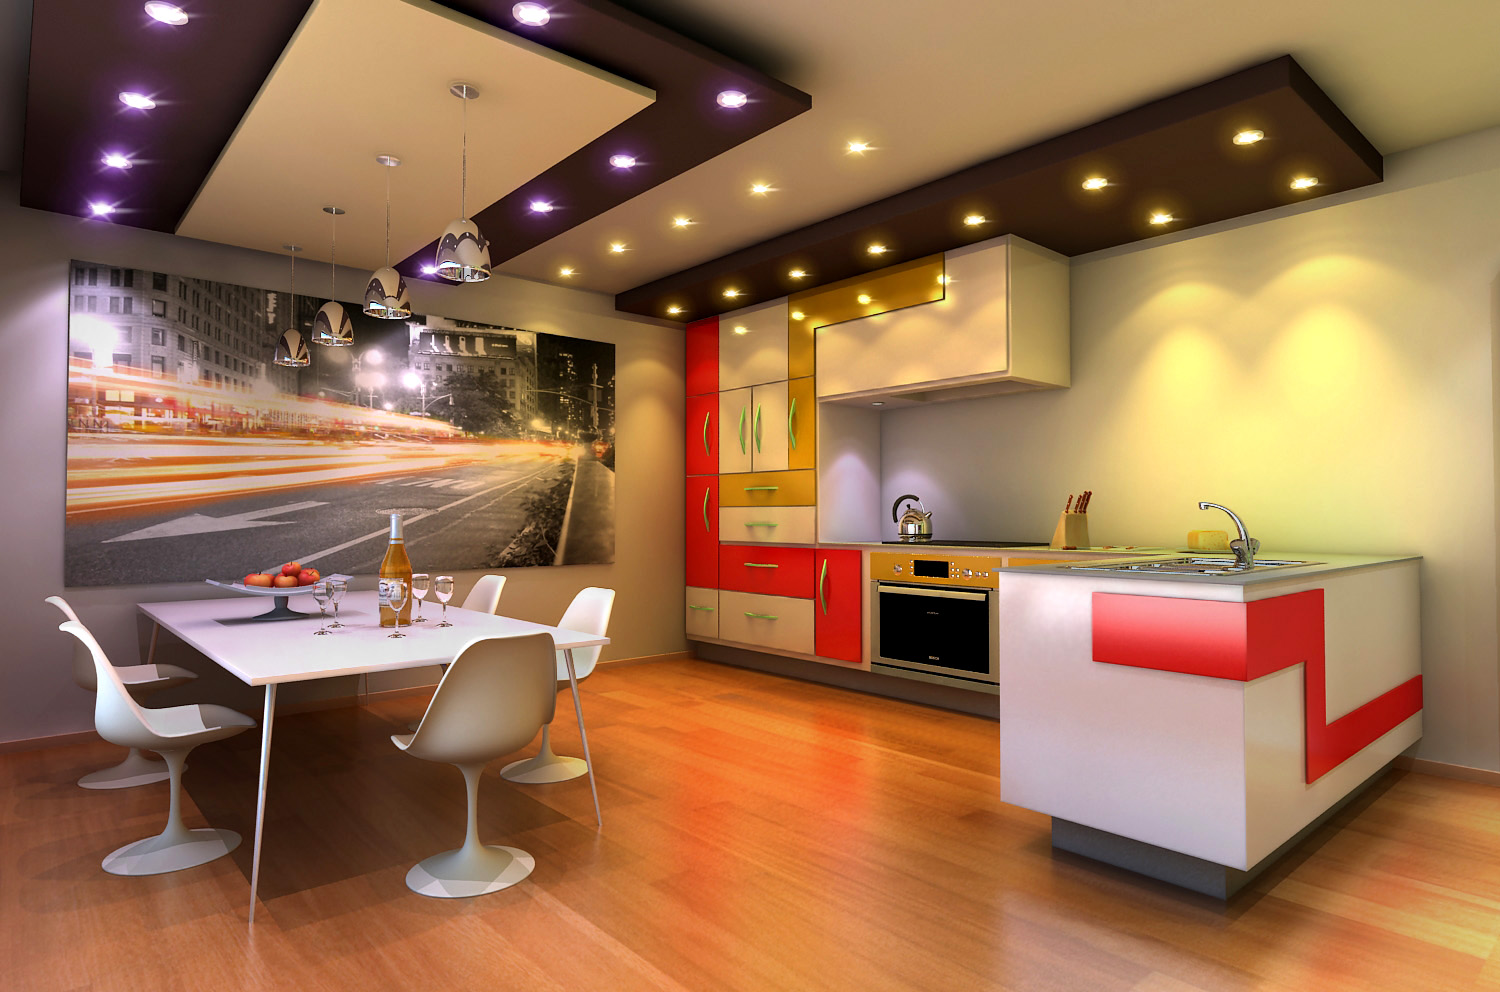 Kitchen design by Ultrarender